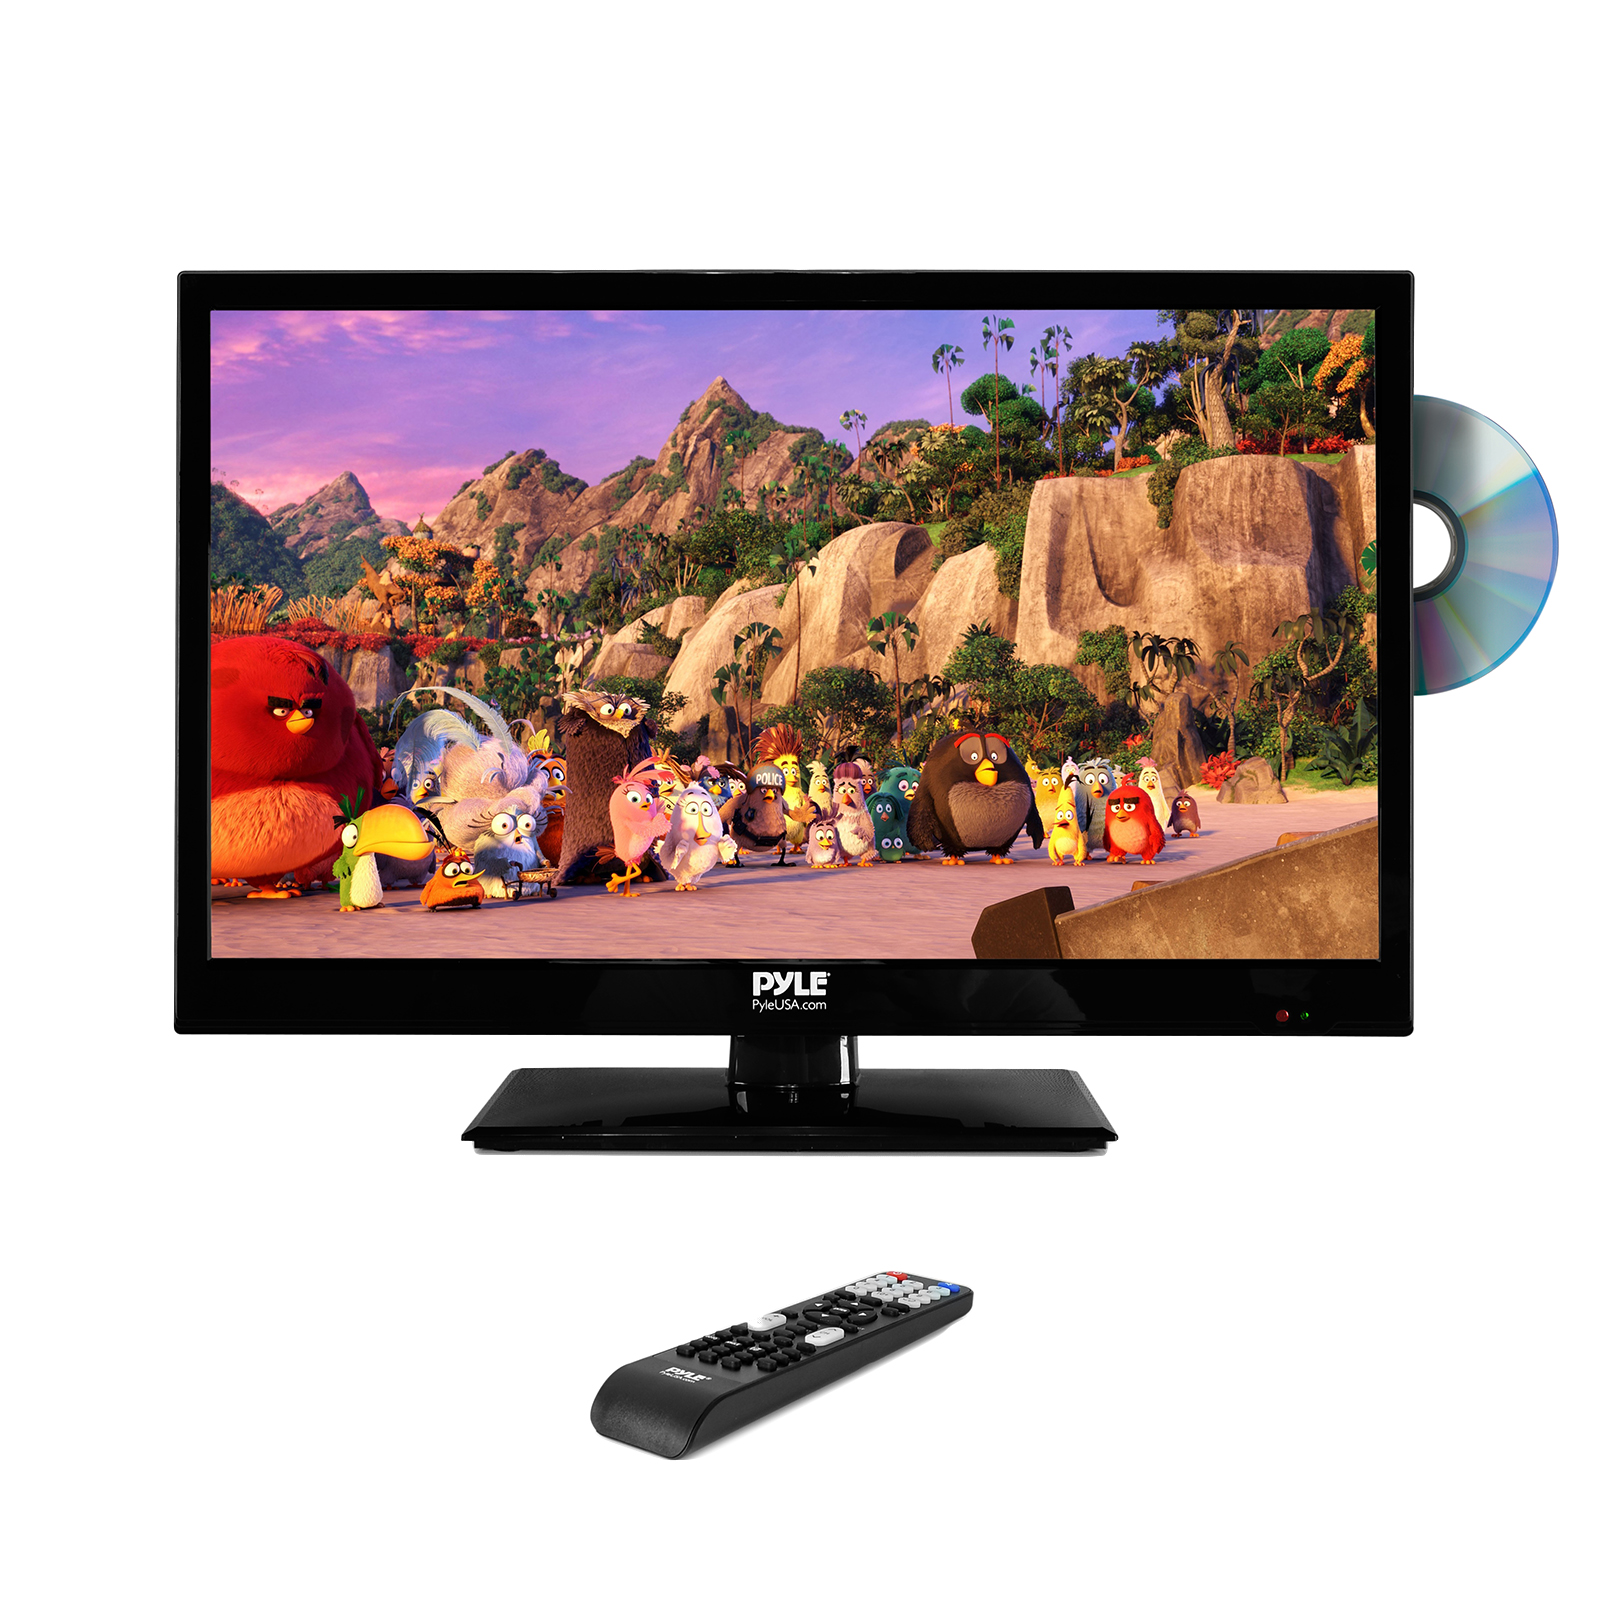 "23.6"" HD LED TV - 1080p HDTV with Built-in CD/DVD Player"